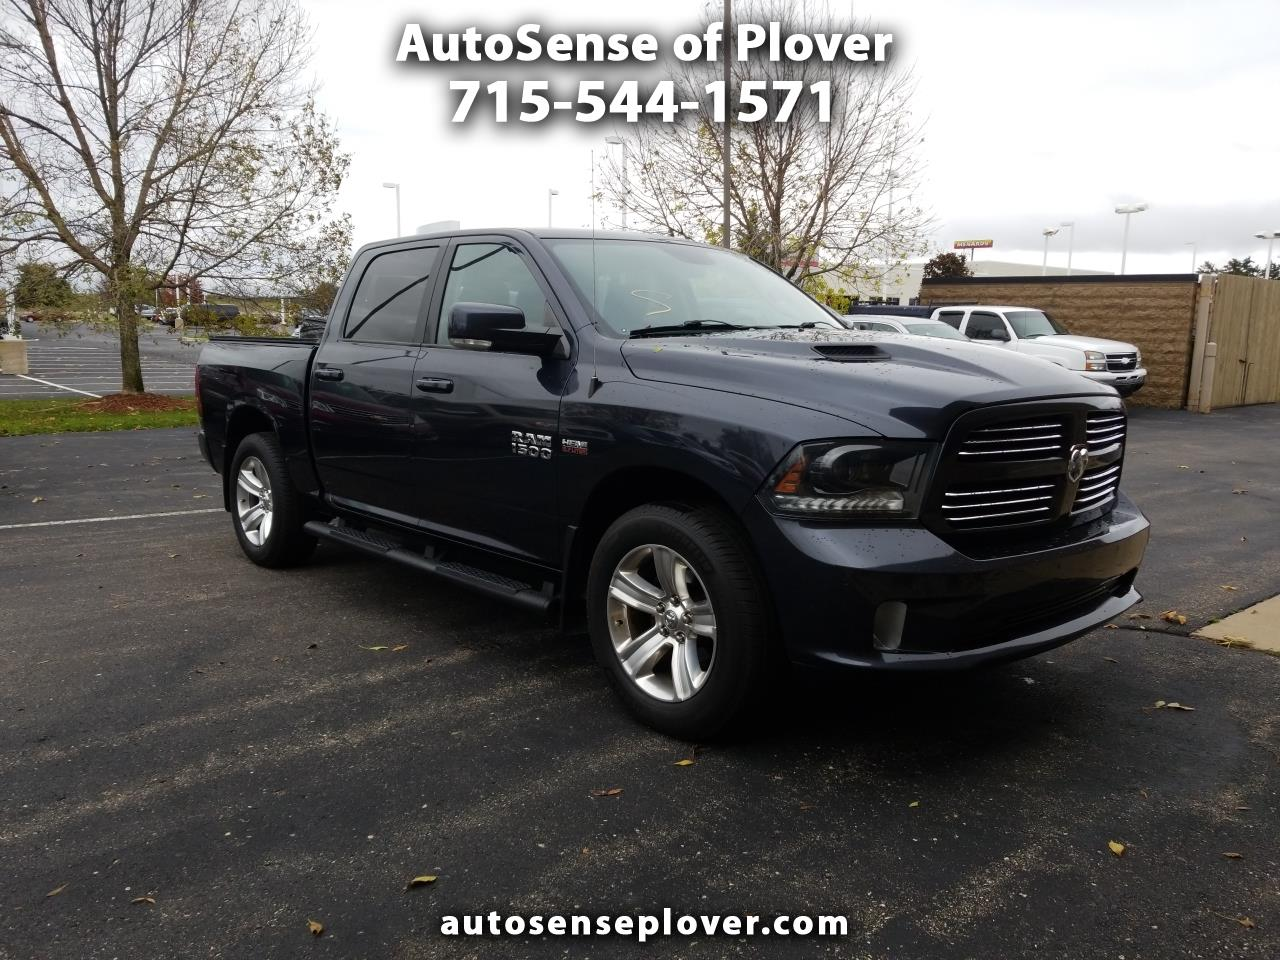 Pre-Owned 2015 RAM 1500 4WD Crew Cab 140.5 in Sport